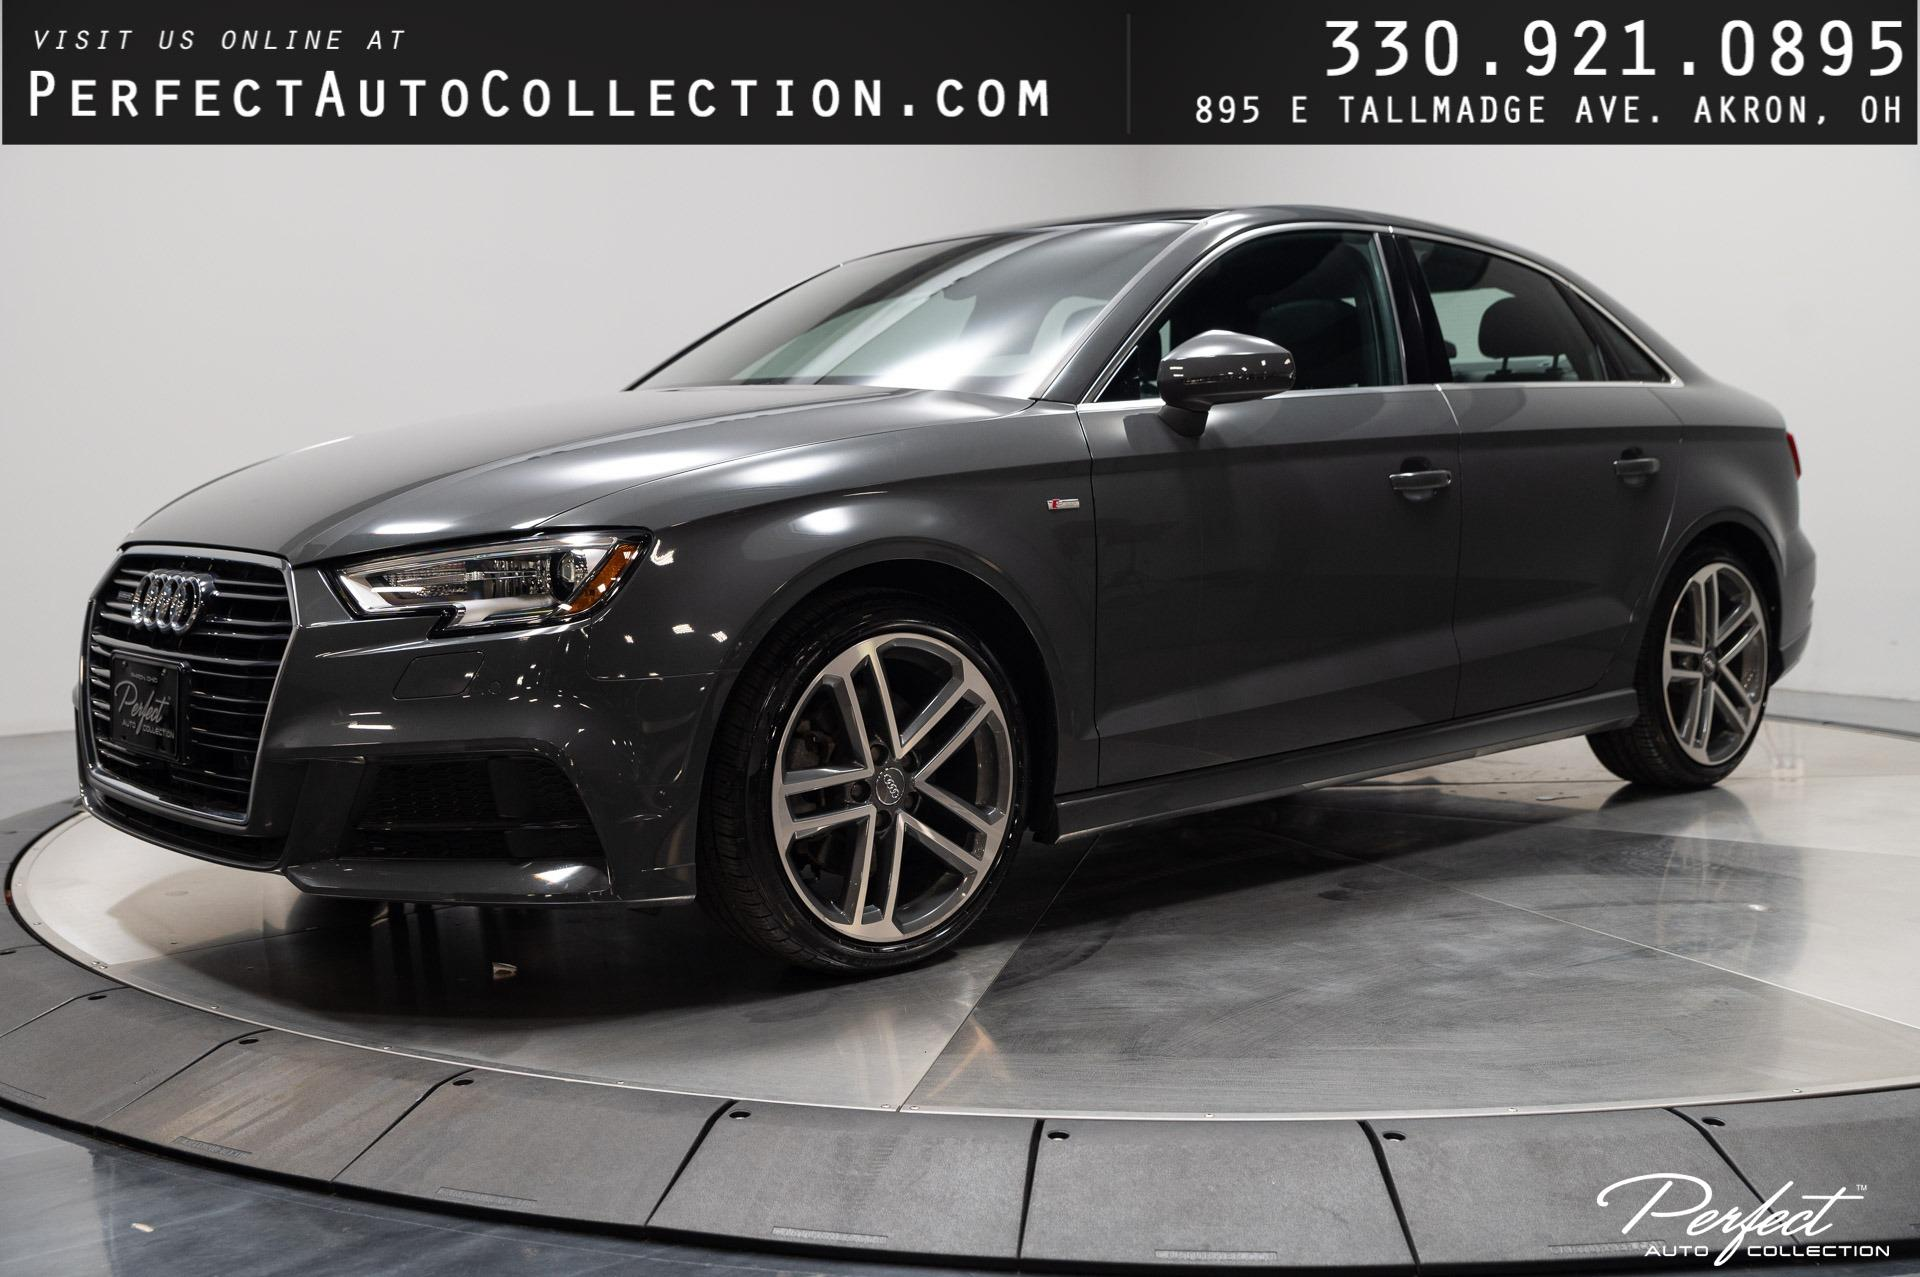 Used 2017 Audi A3 2.0T quattro Premium Plus for sale Sold at Perfect Auto Collection in Akron OH 44310 1